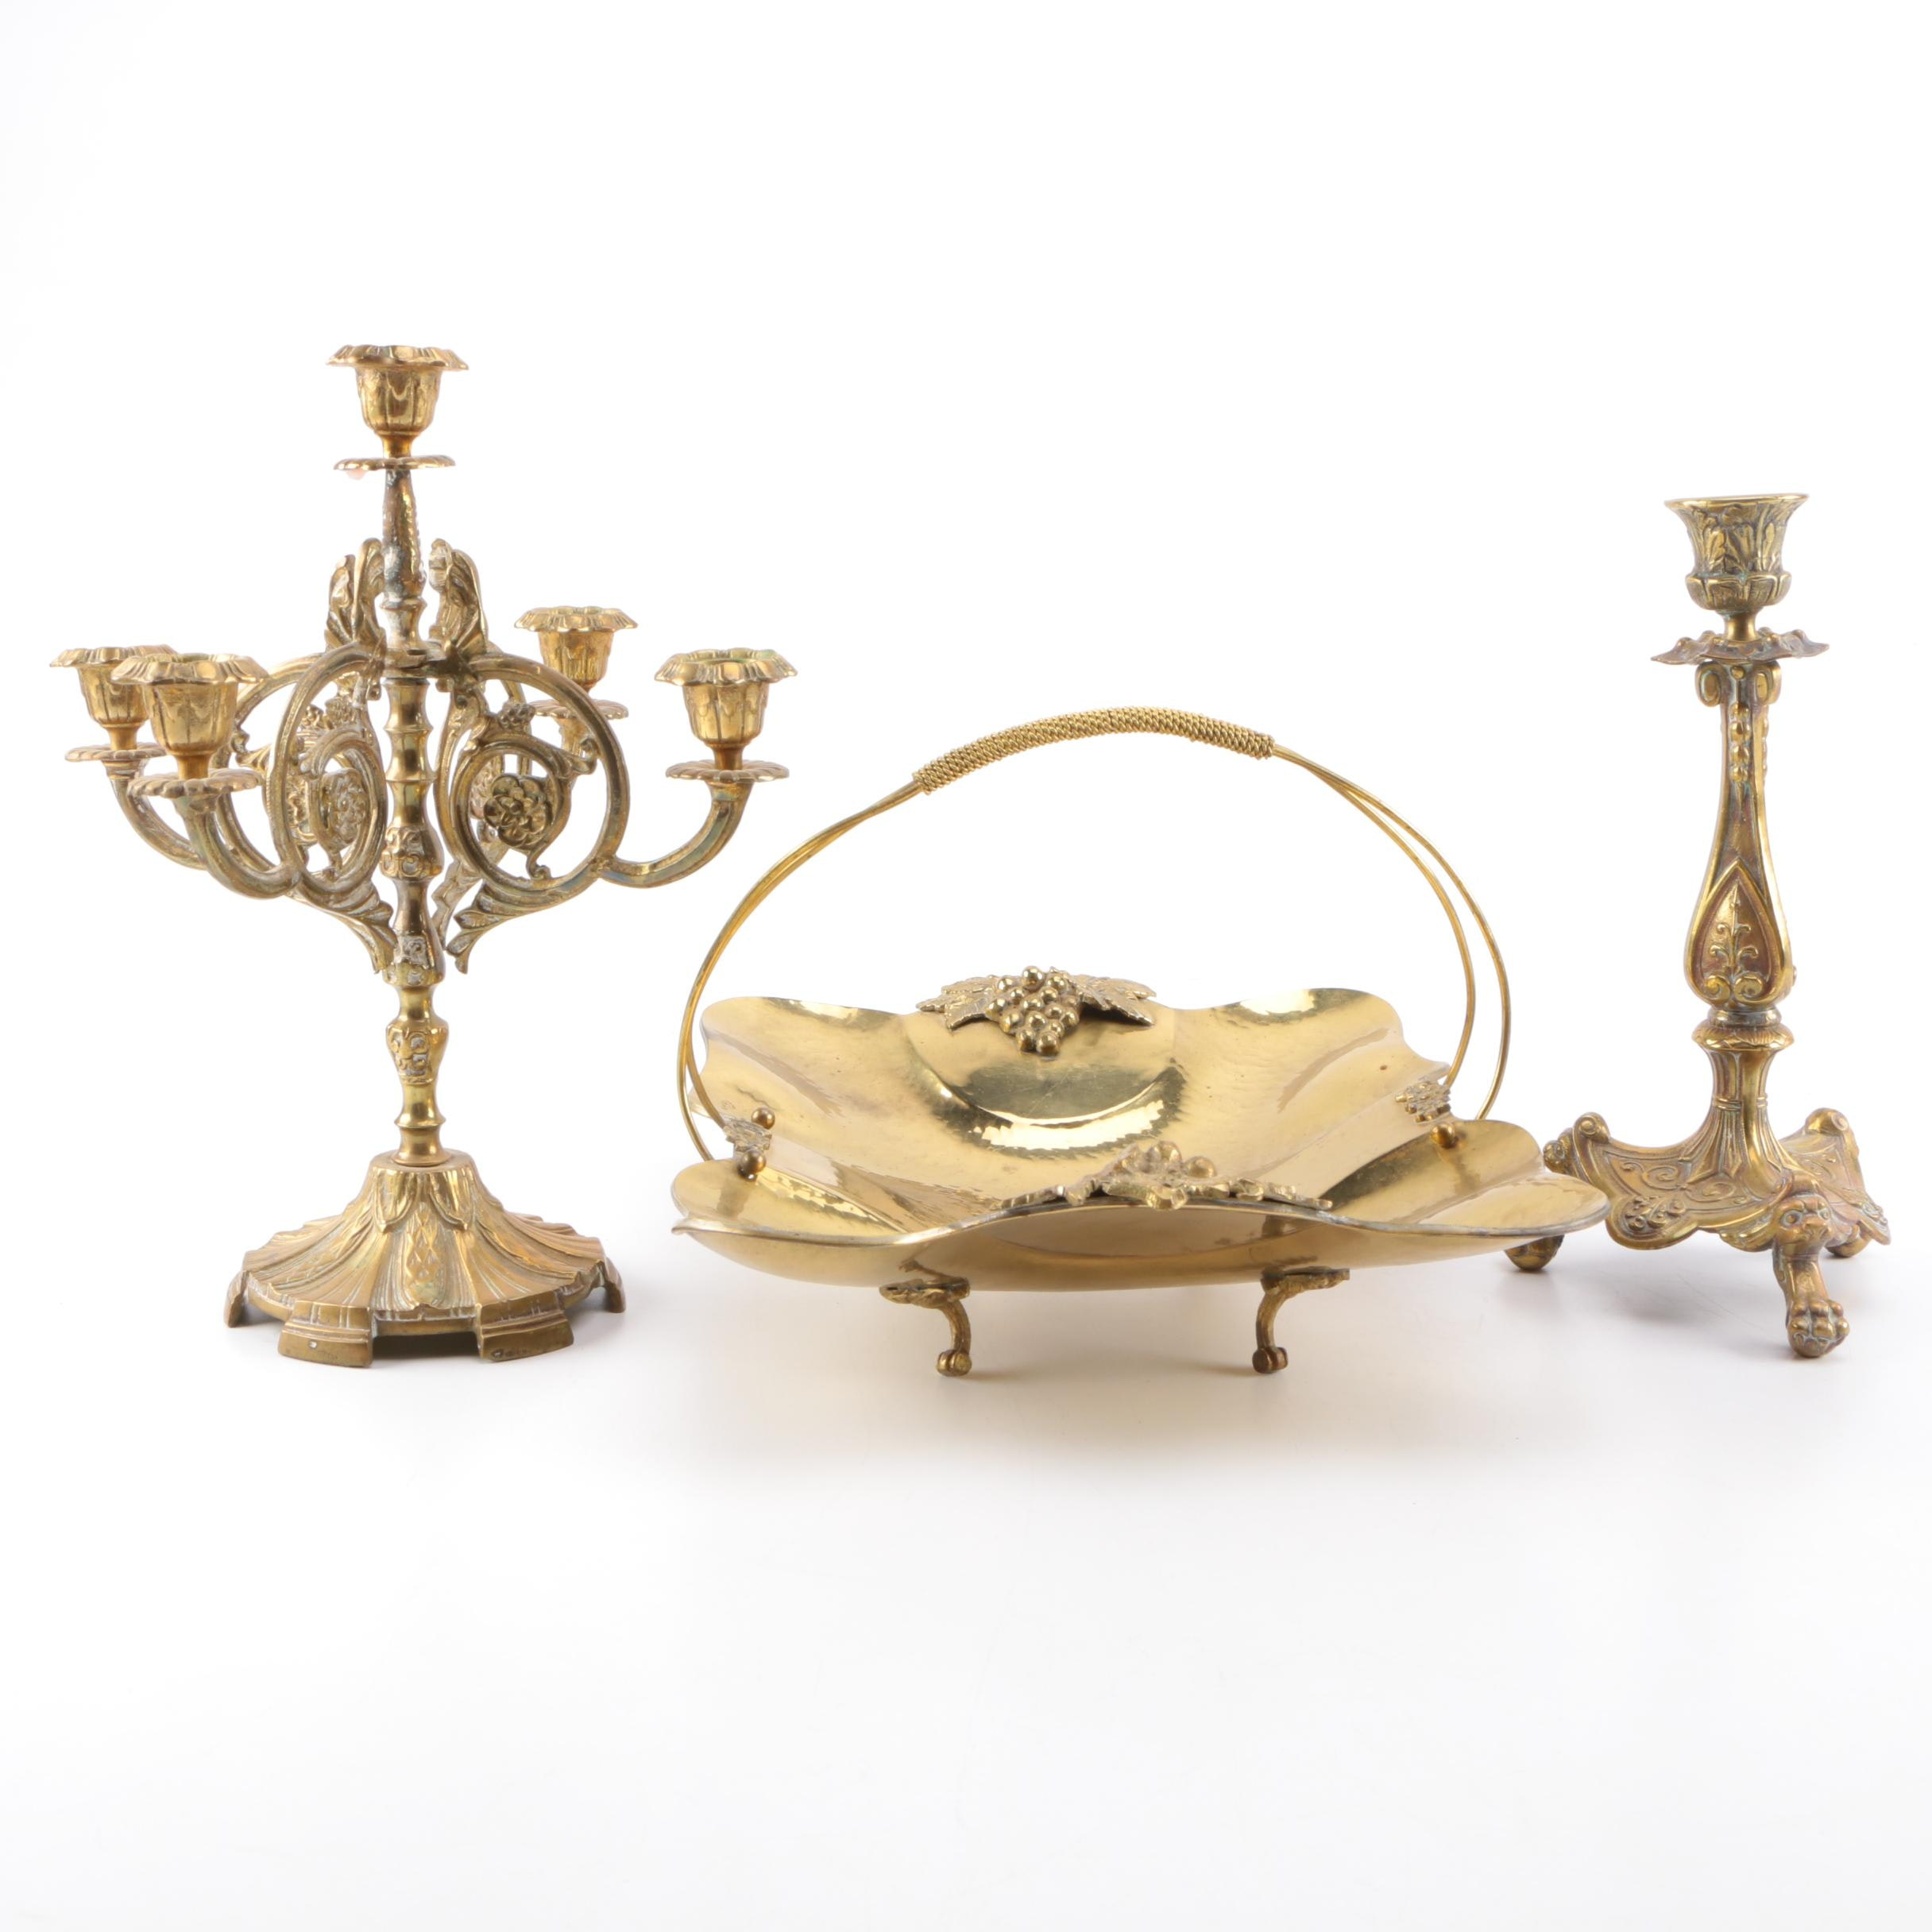 Brass Bride's Basket & Candle Holders